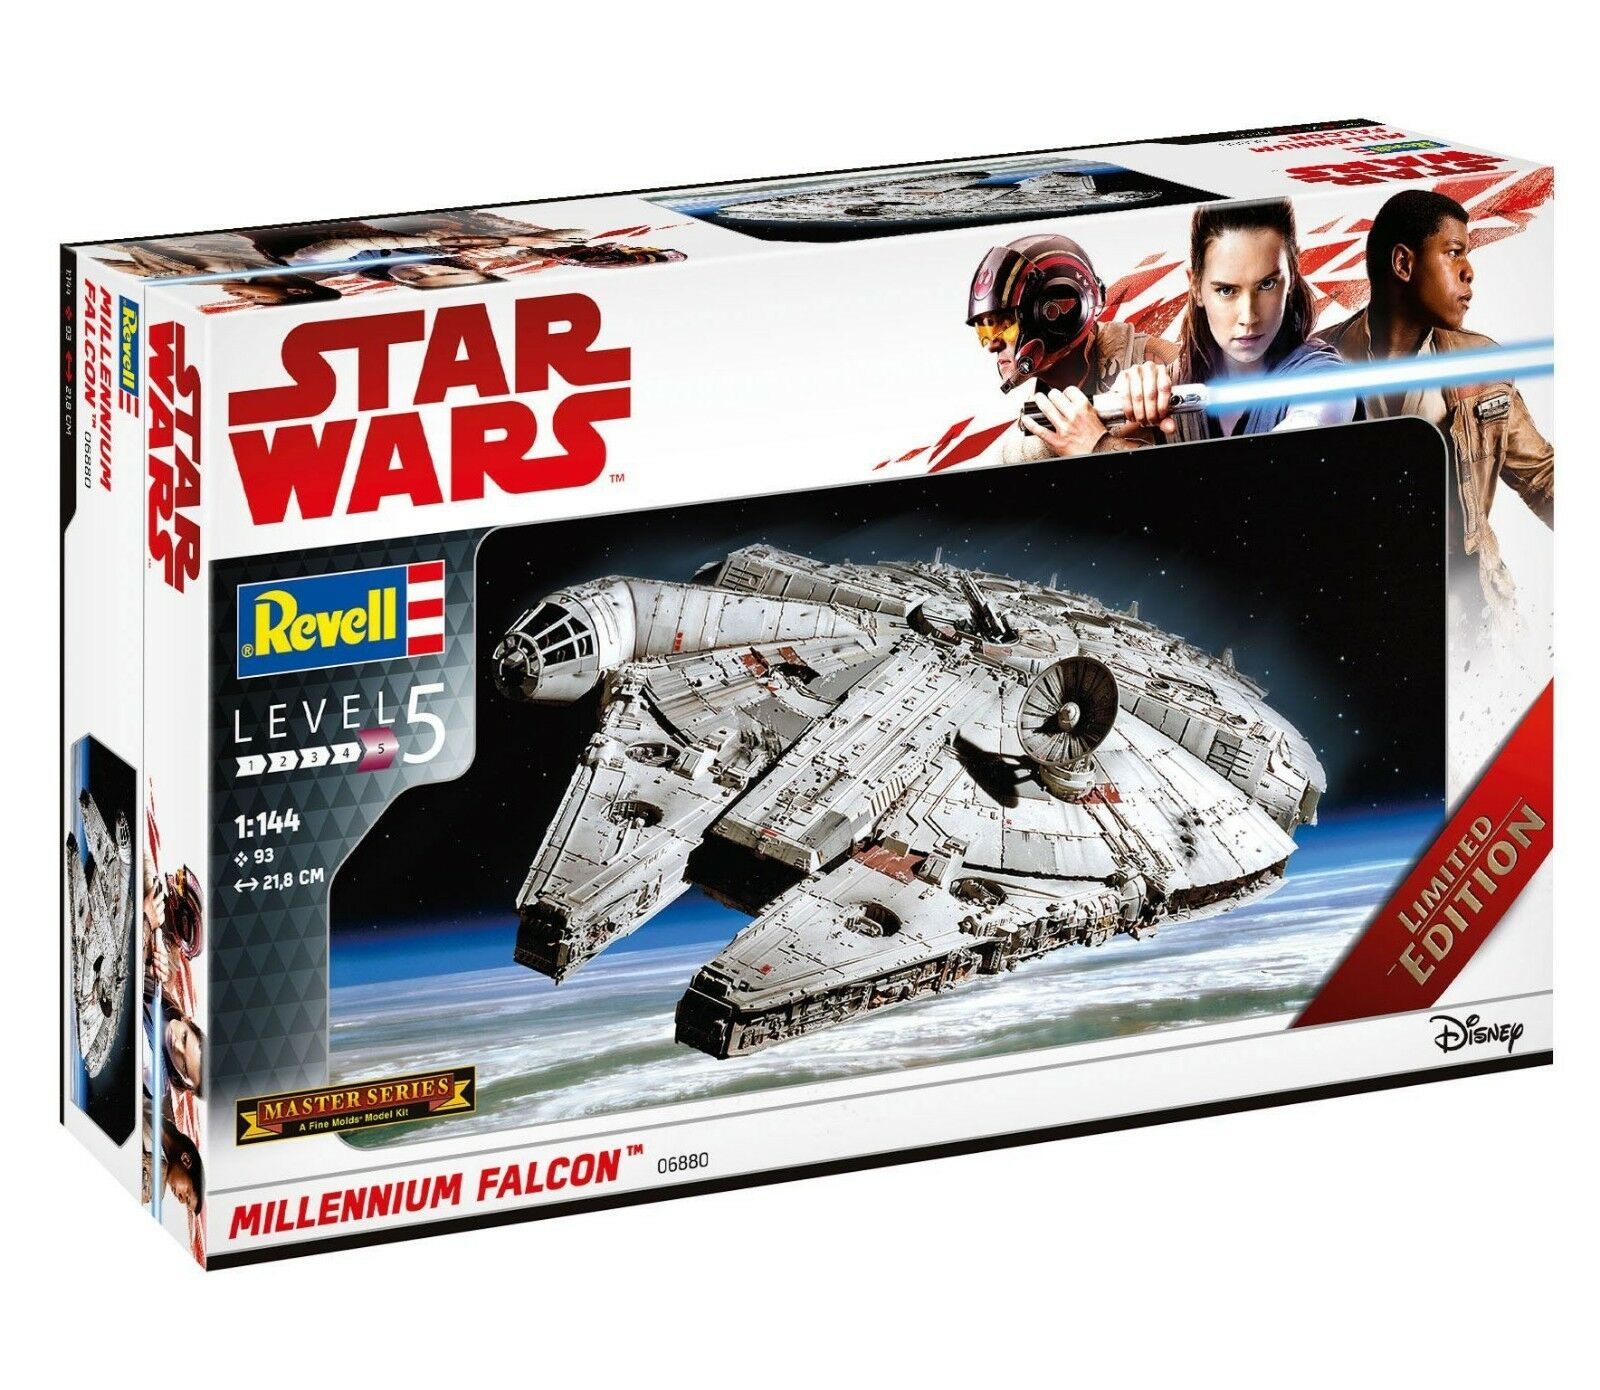 Revell Level 5 Model Kit 1 144 Star Wars Millennium Falcon Limited Edition 06880